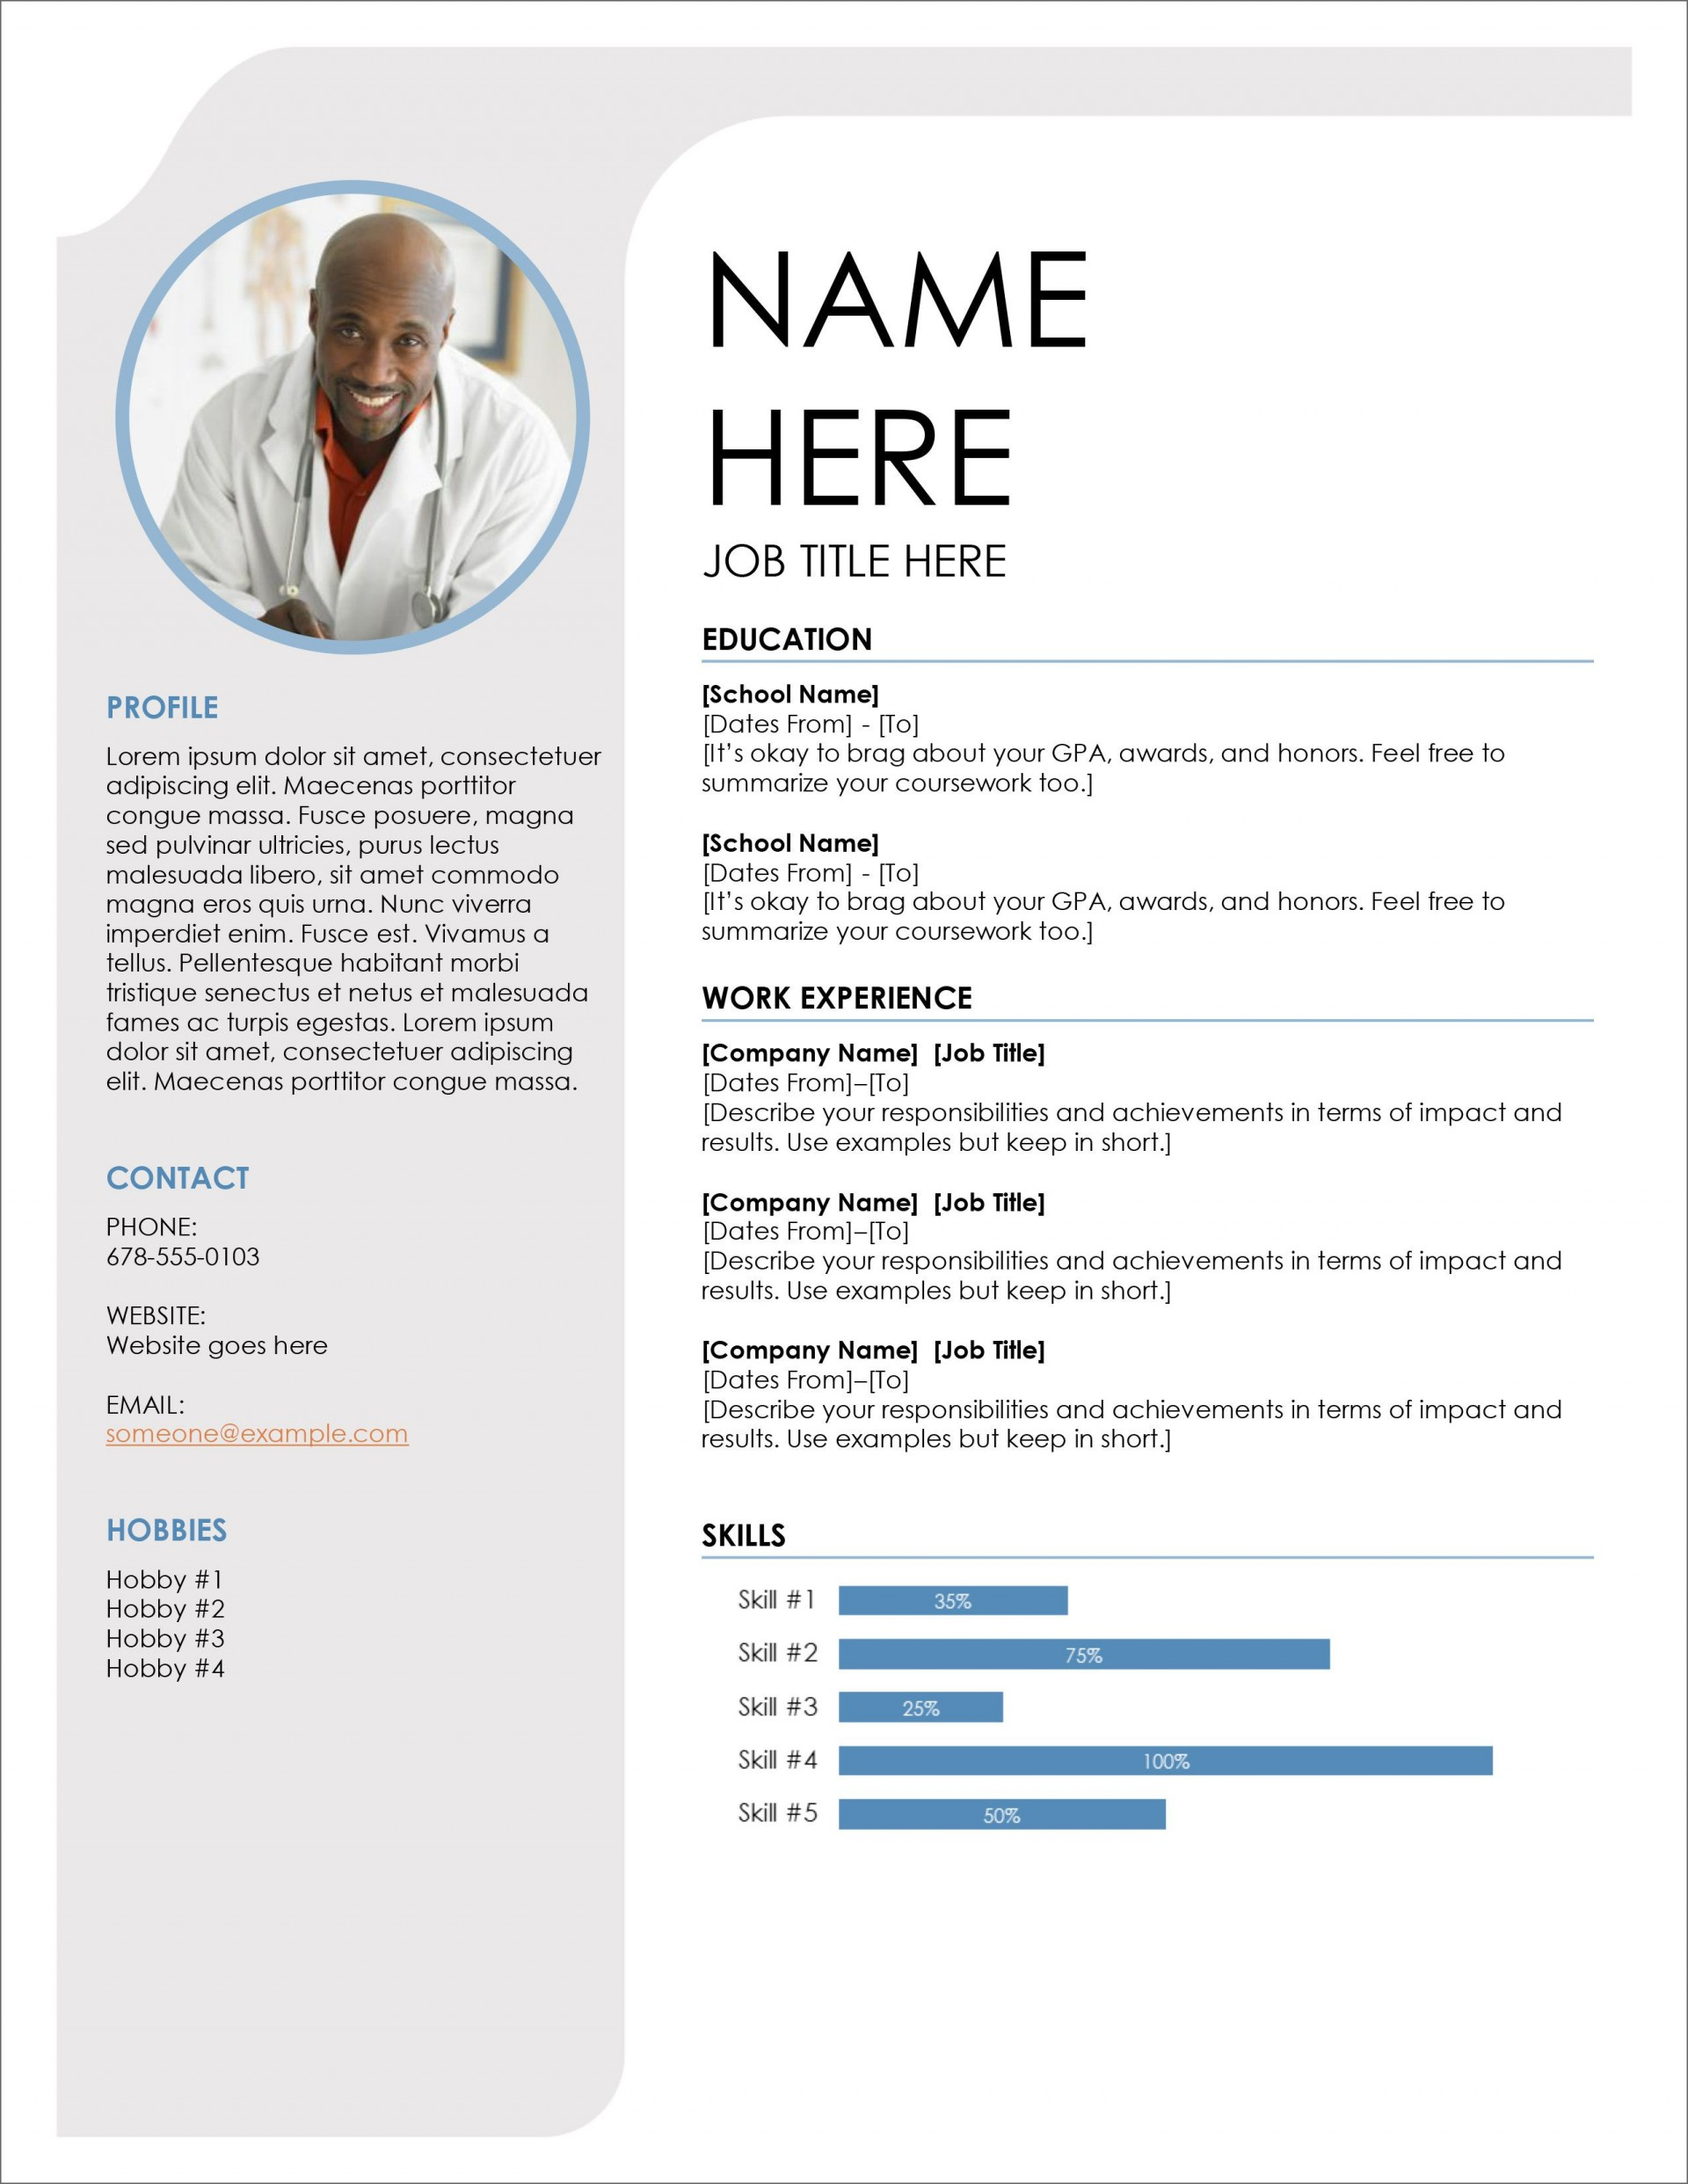 006 Imposing Download Resume Template Word 2007 Sample 1920